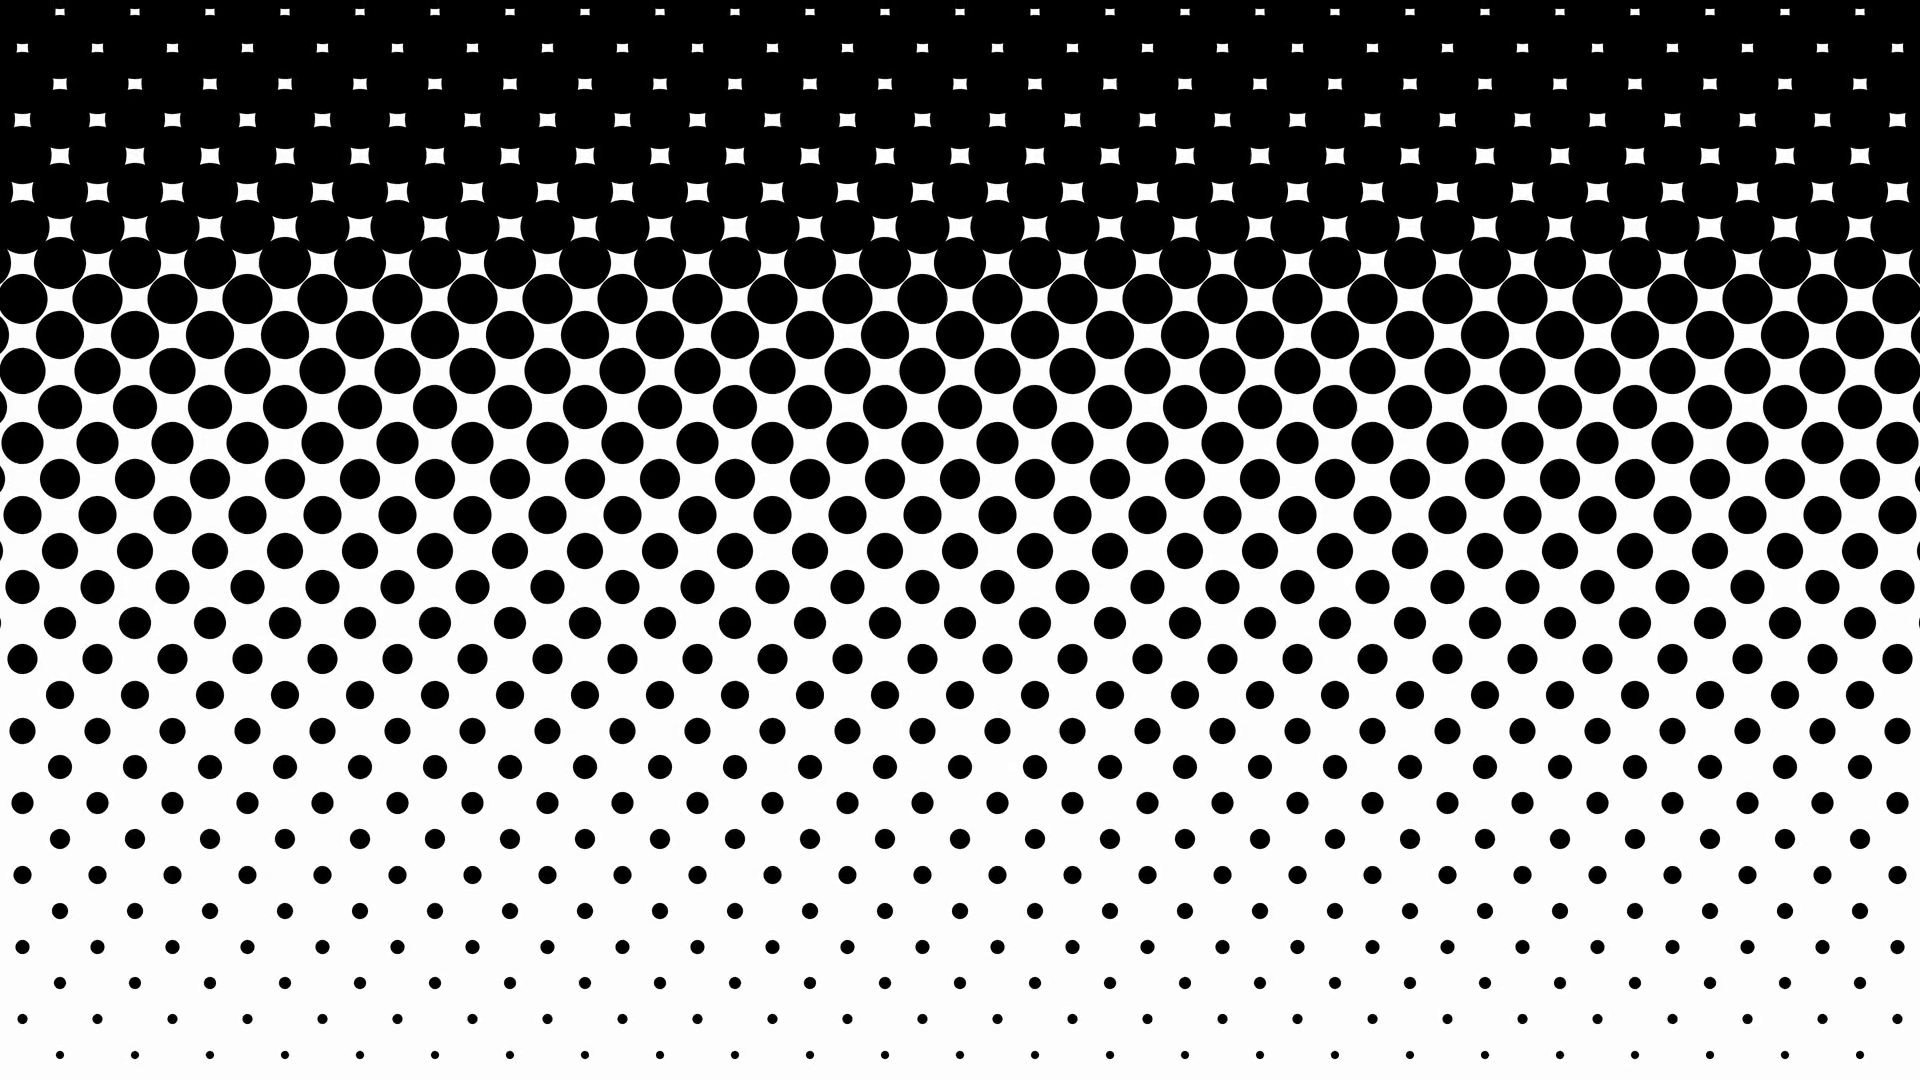 Pattern,Line,Design,Polka dot,Pattern,Circle,Monochrome,Black.